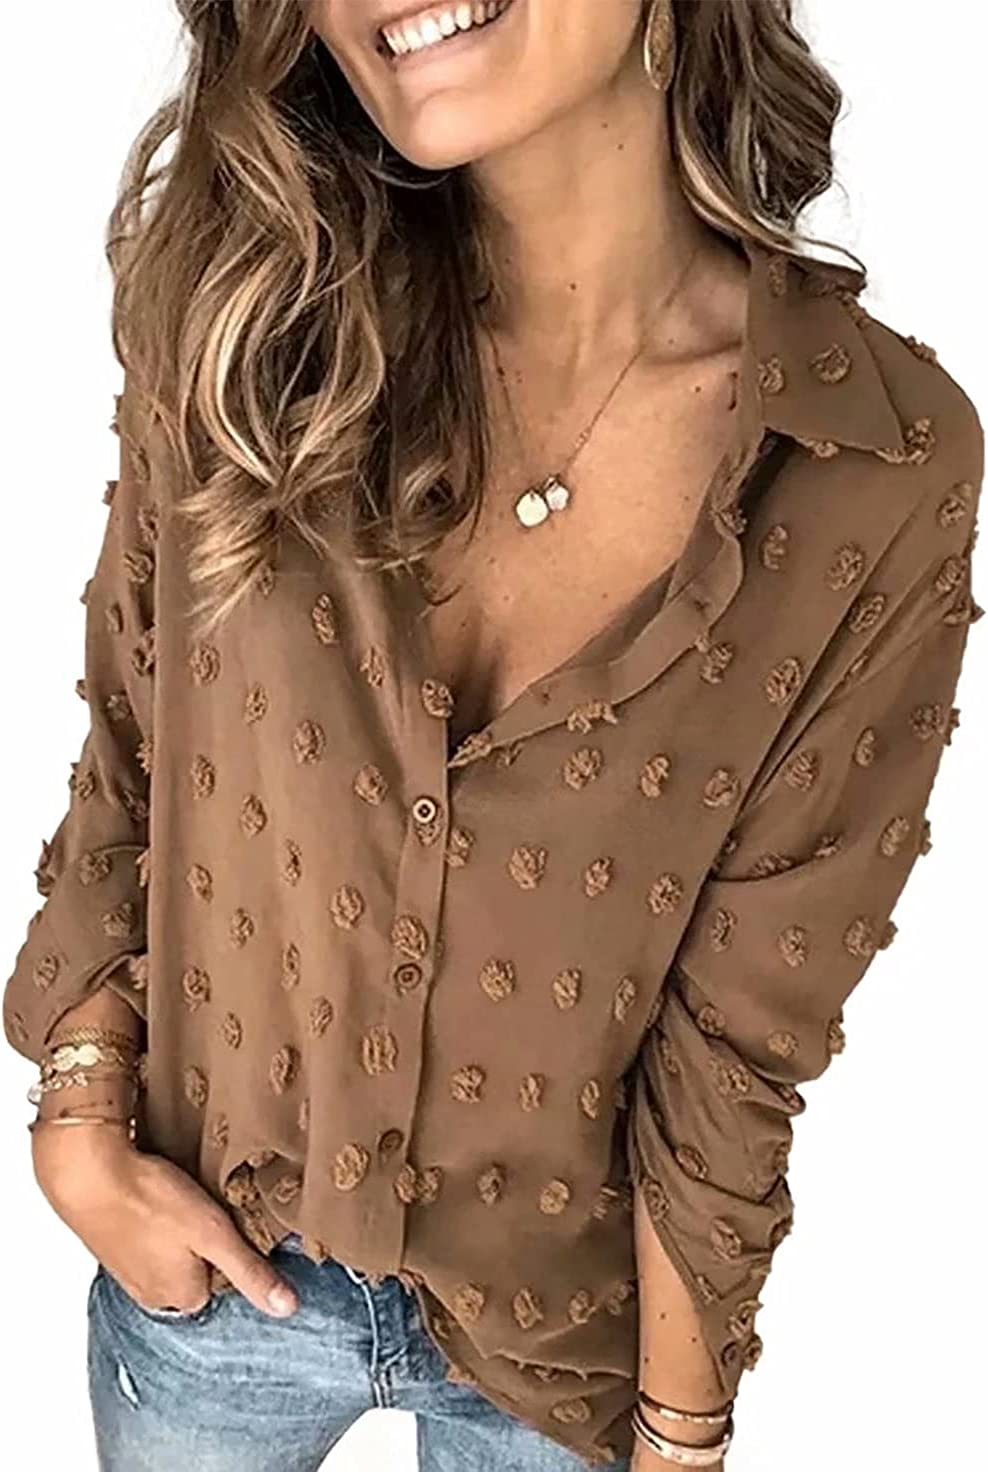 LUNAWINK Womens Long Sleeve Button Down Shirt Tops for Work V Neck Sheer Blouse